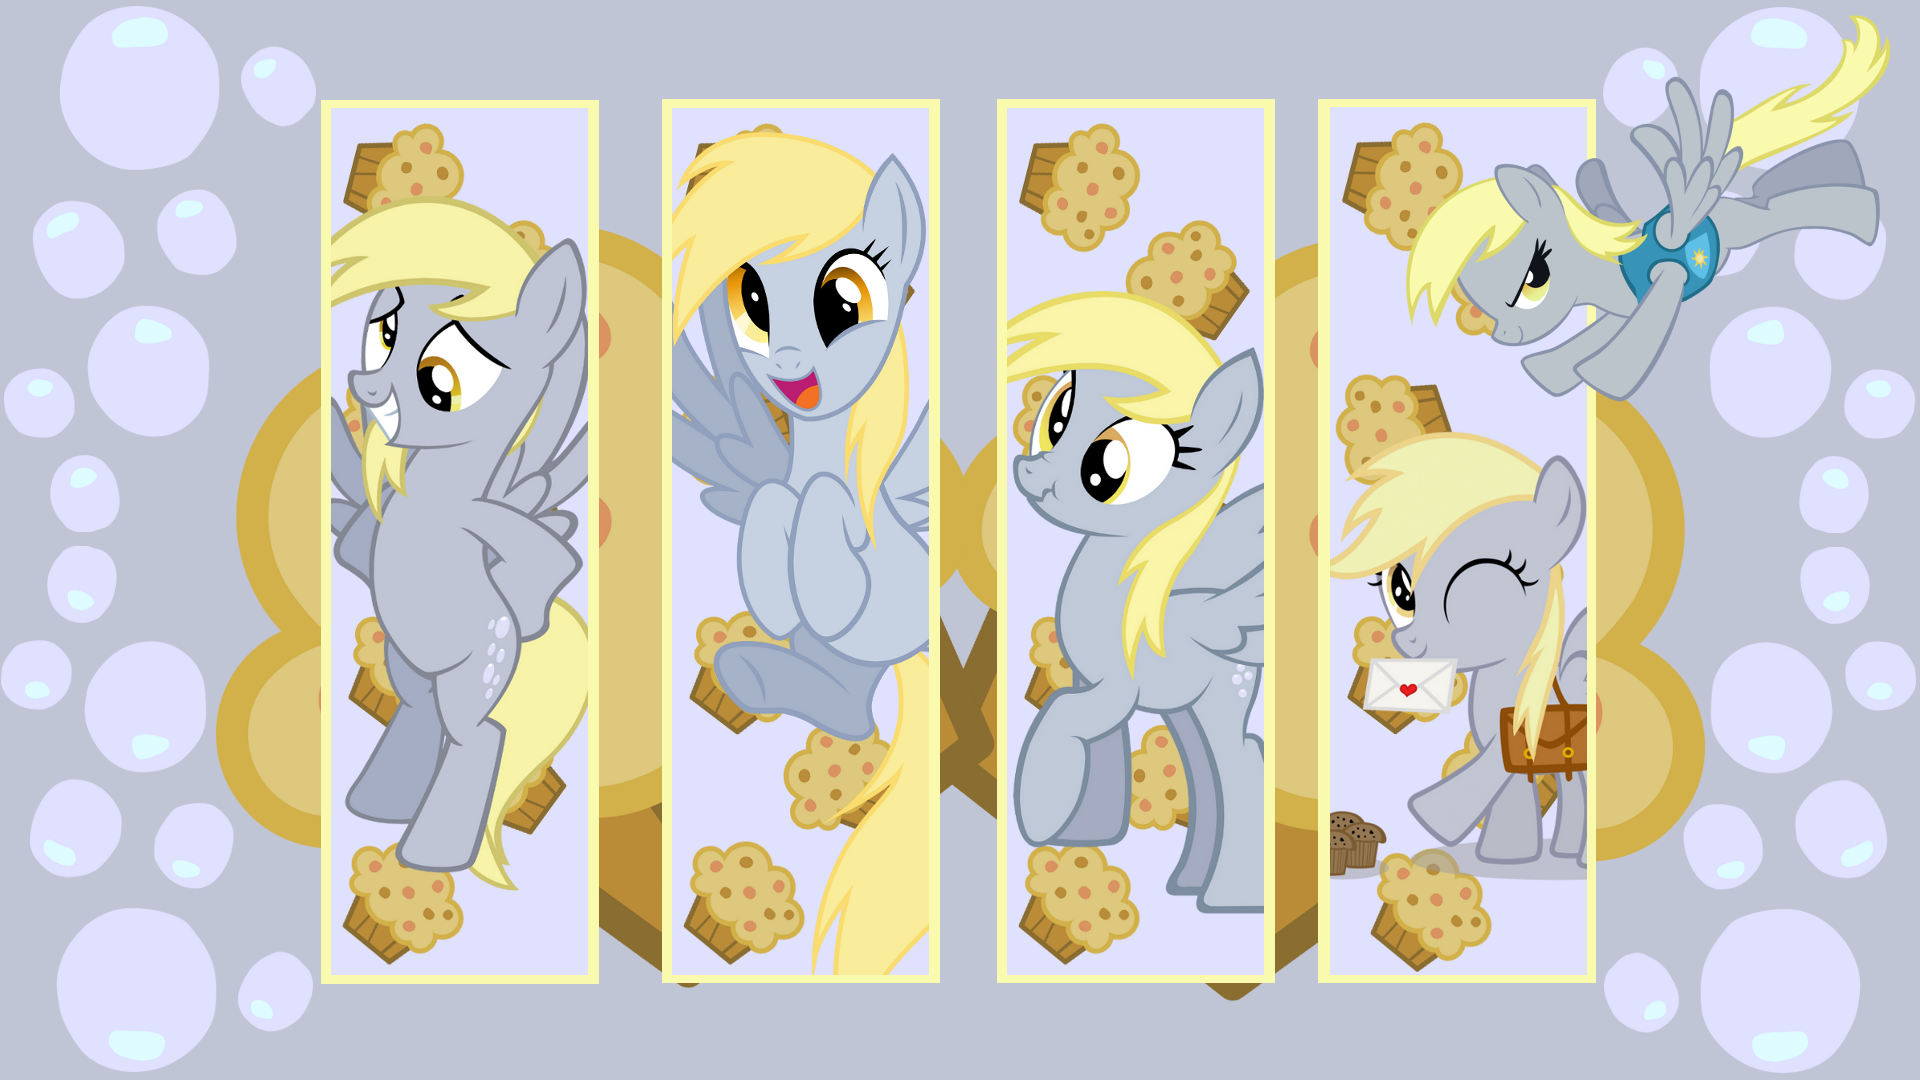 So much derpy by neodarkwing